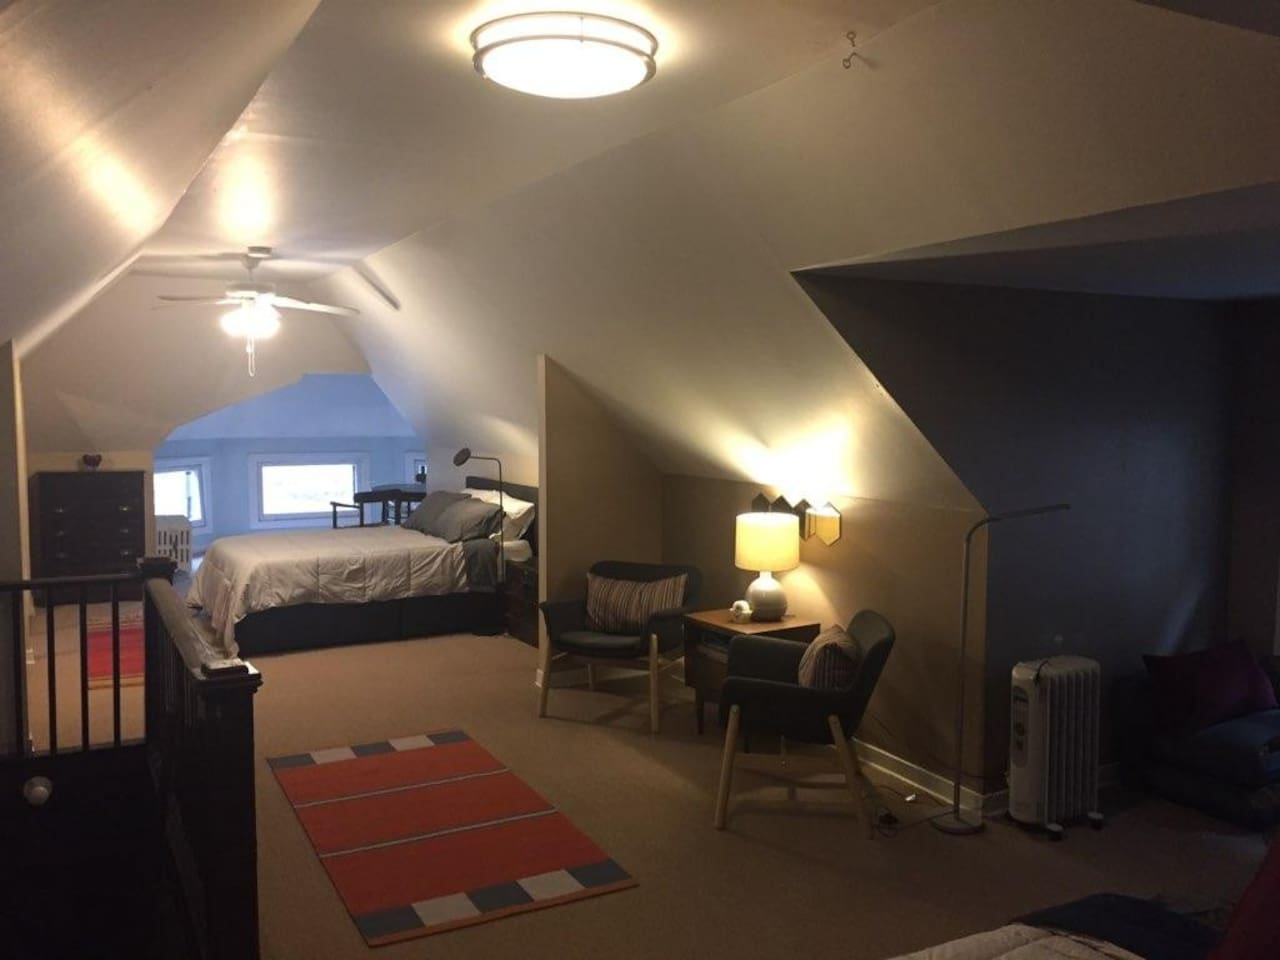 Our spacious attic loft offers  a cozy respite just 2 blocks from the heart of Uptown,  Aragon and Riviera theaters and the Redline!